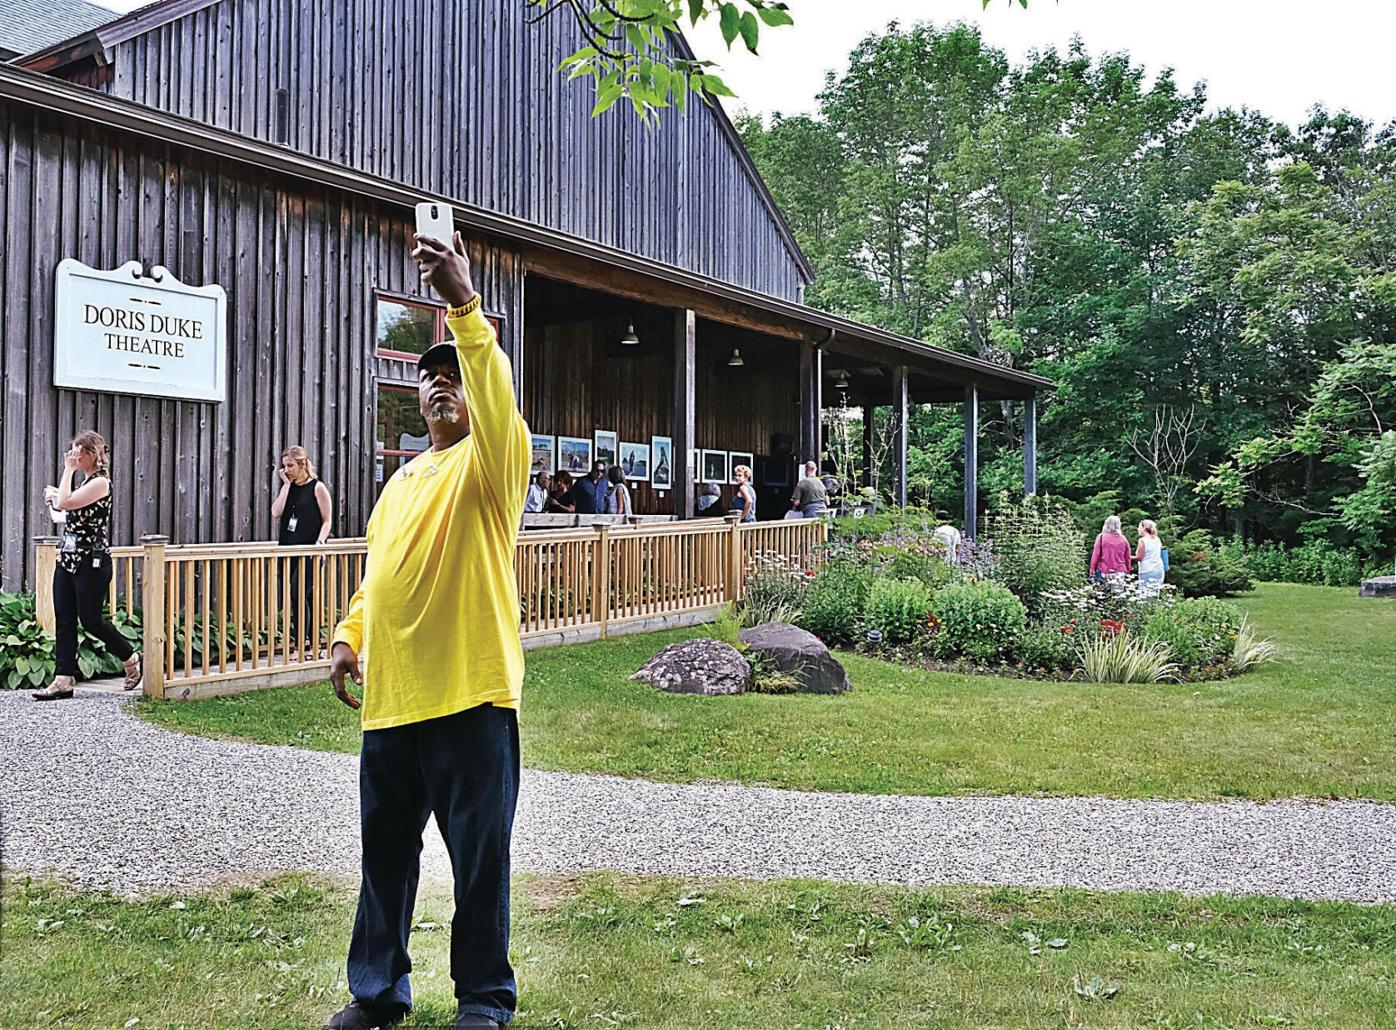 A delicate dance: Veterans captivated by very carefully planned day at Jacob's Pillow